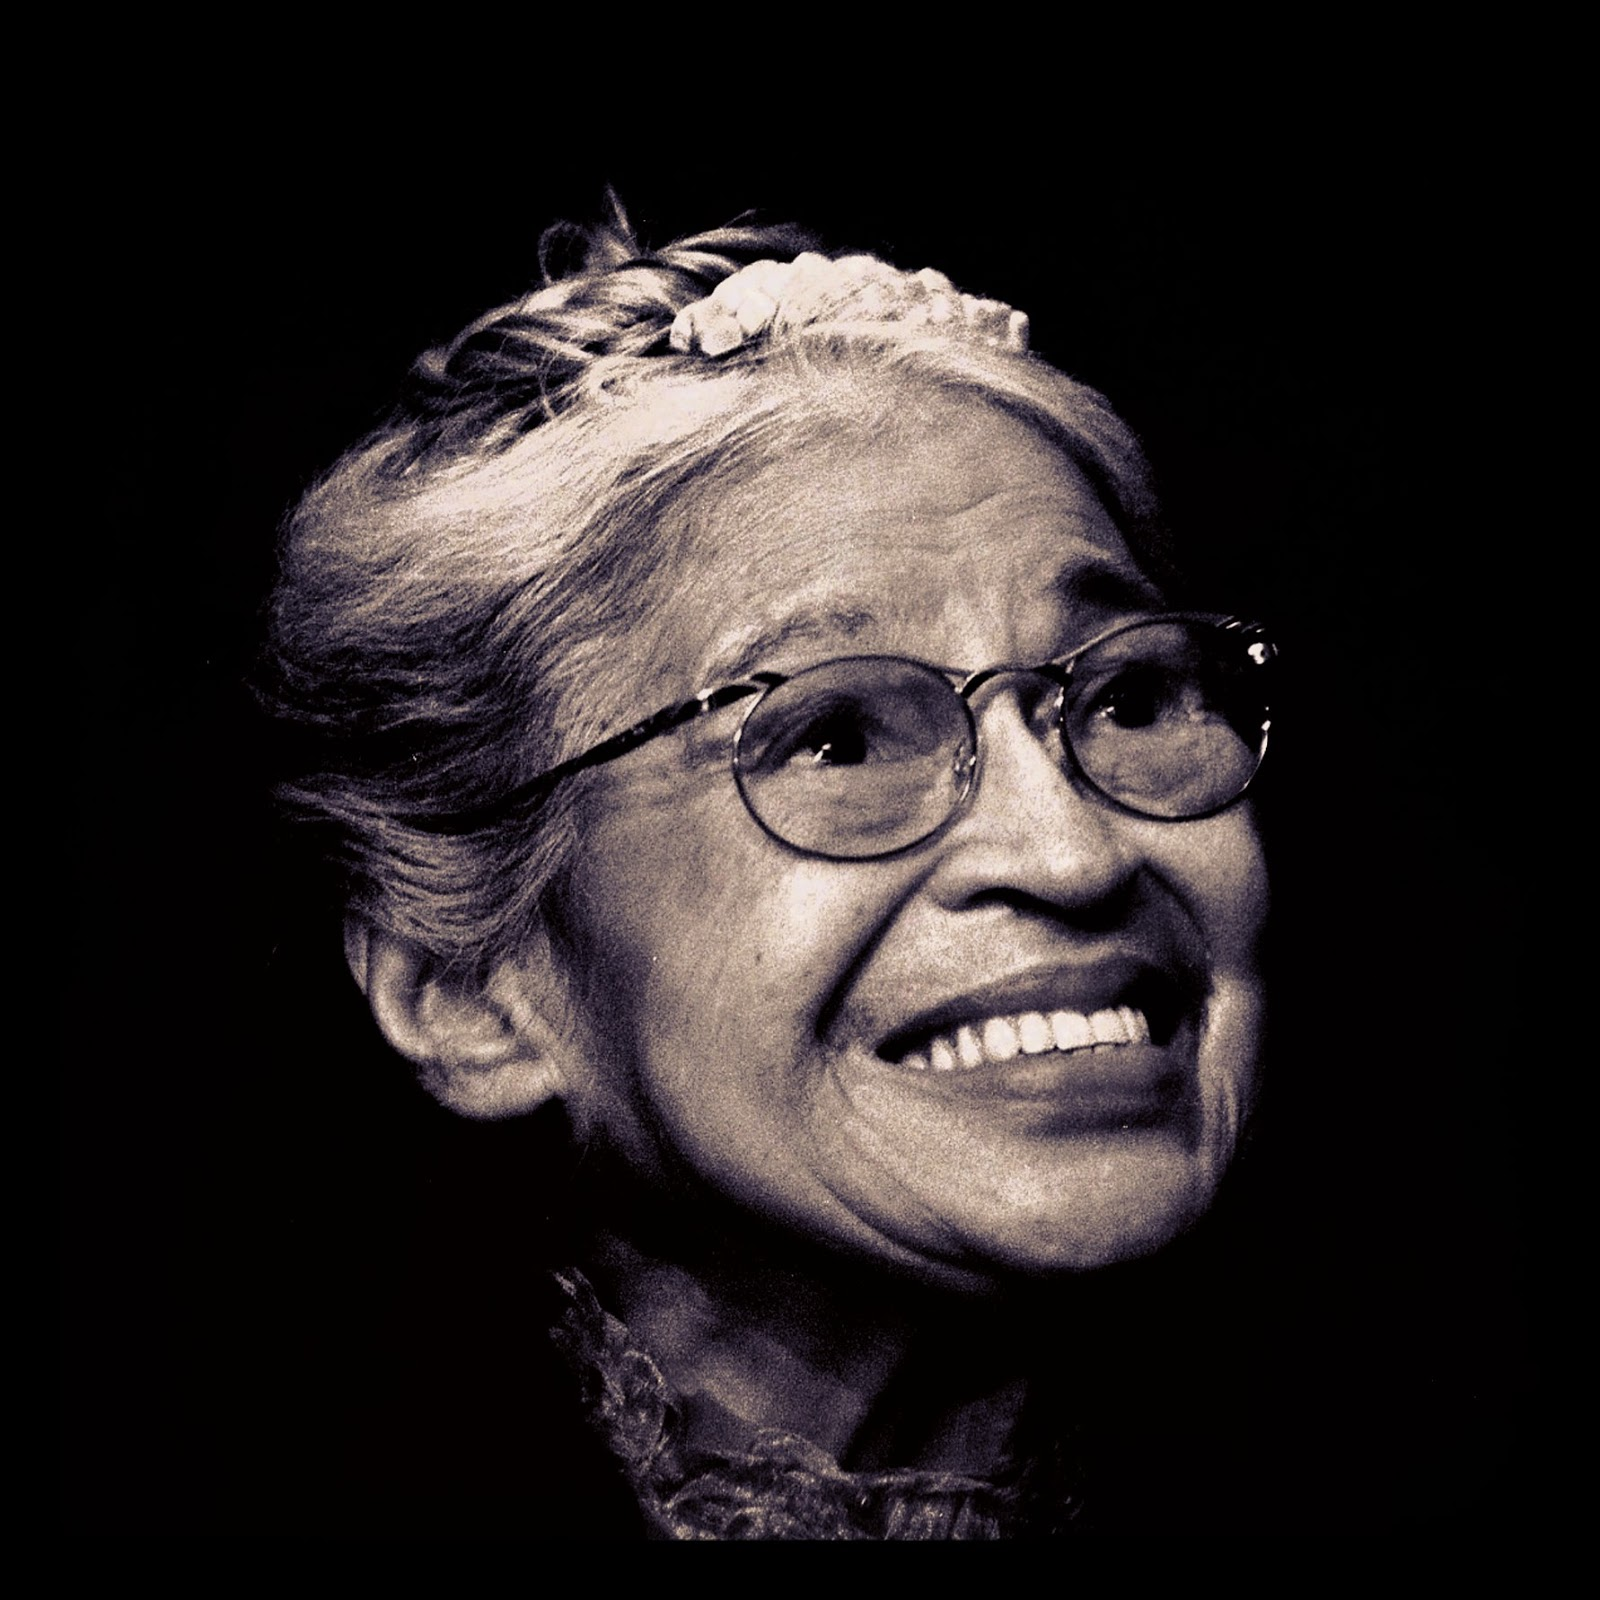 rosa parks and martin luther king jr relationship